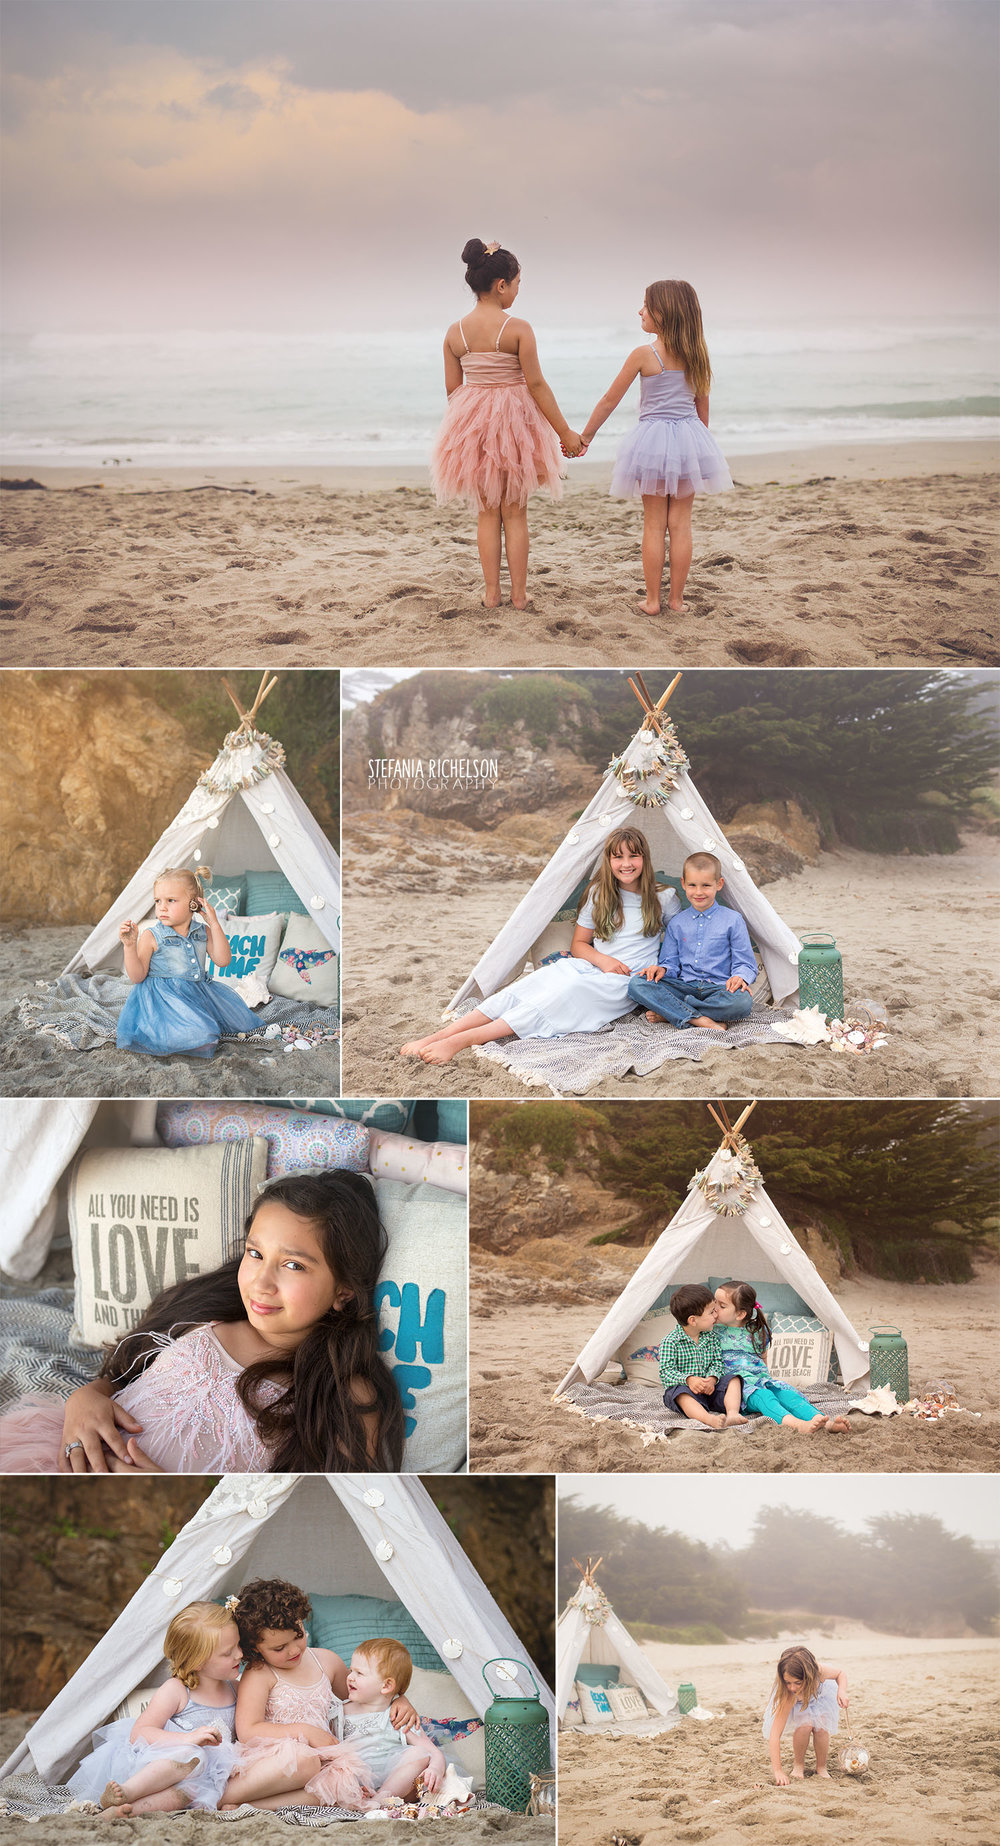 kids-on-the-beach-with-a-teepee-in-Fort-Bragg.jpg